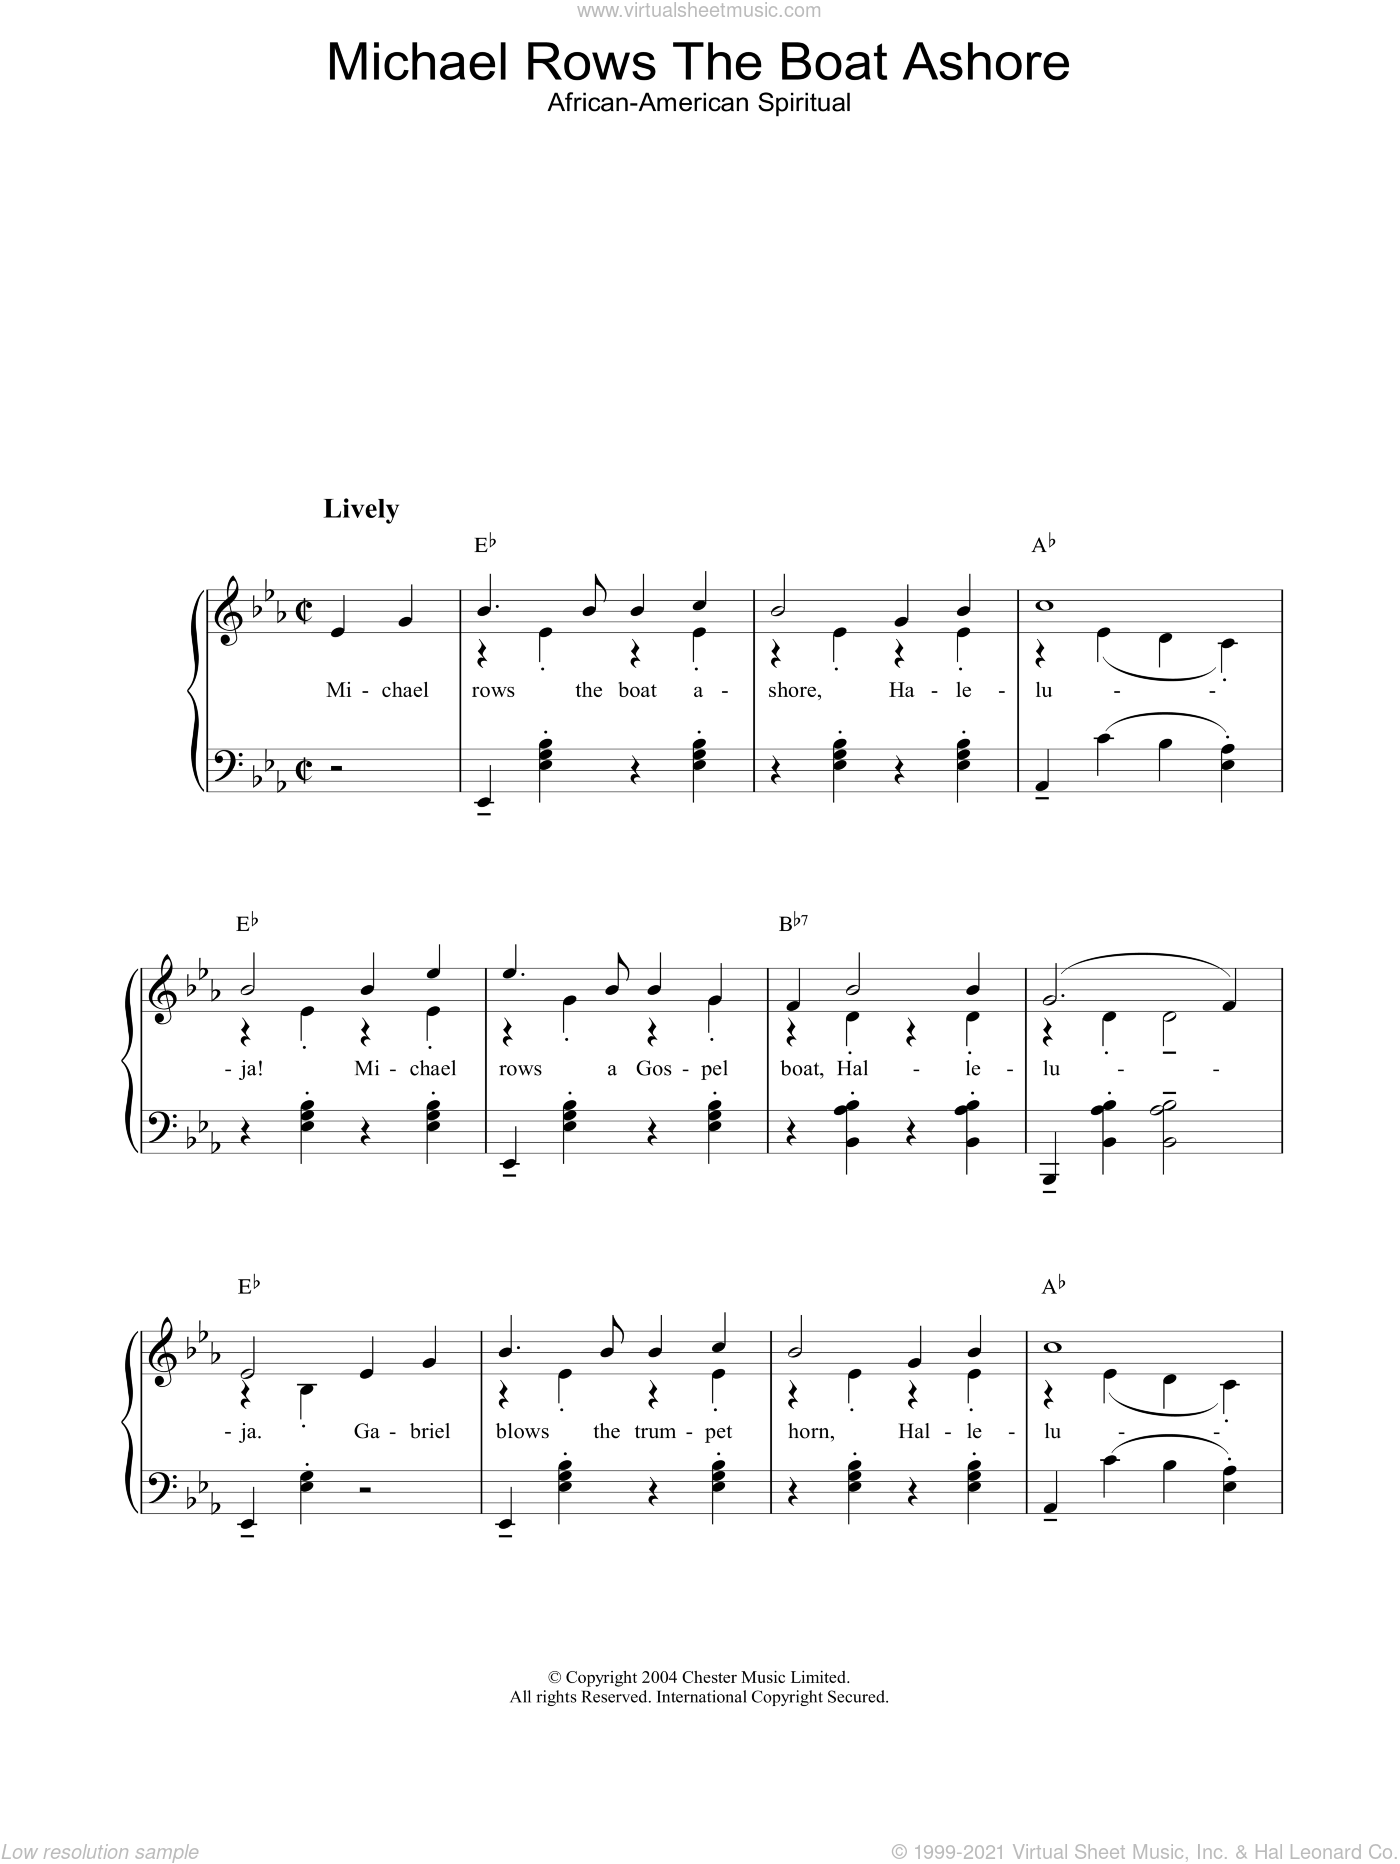 Michael Rows The Boat Ashore sheet music for piano solo. Score Image Preview.